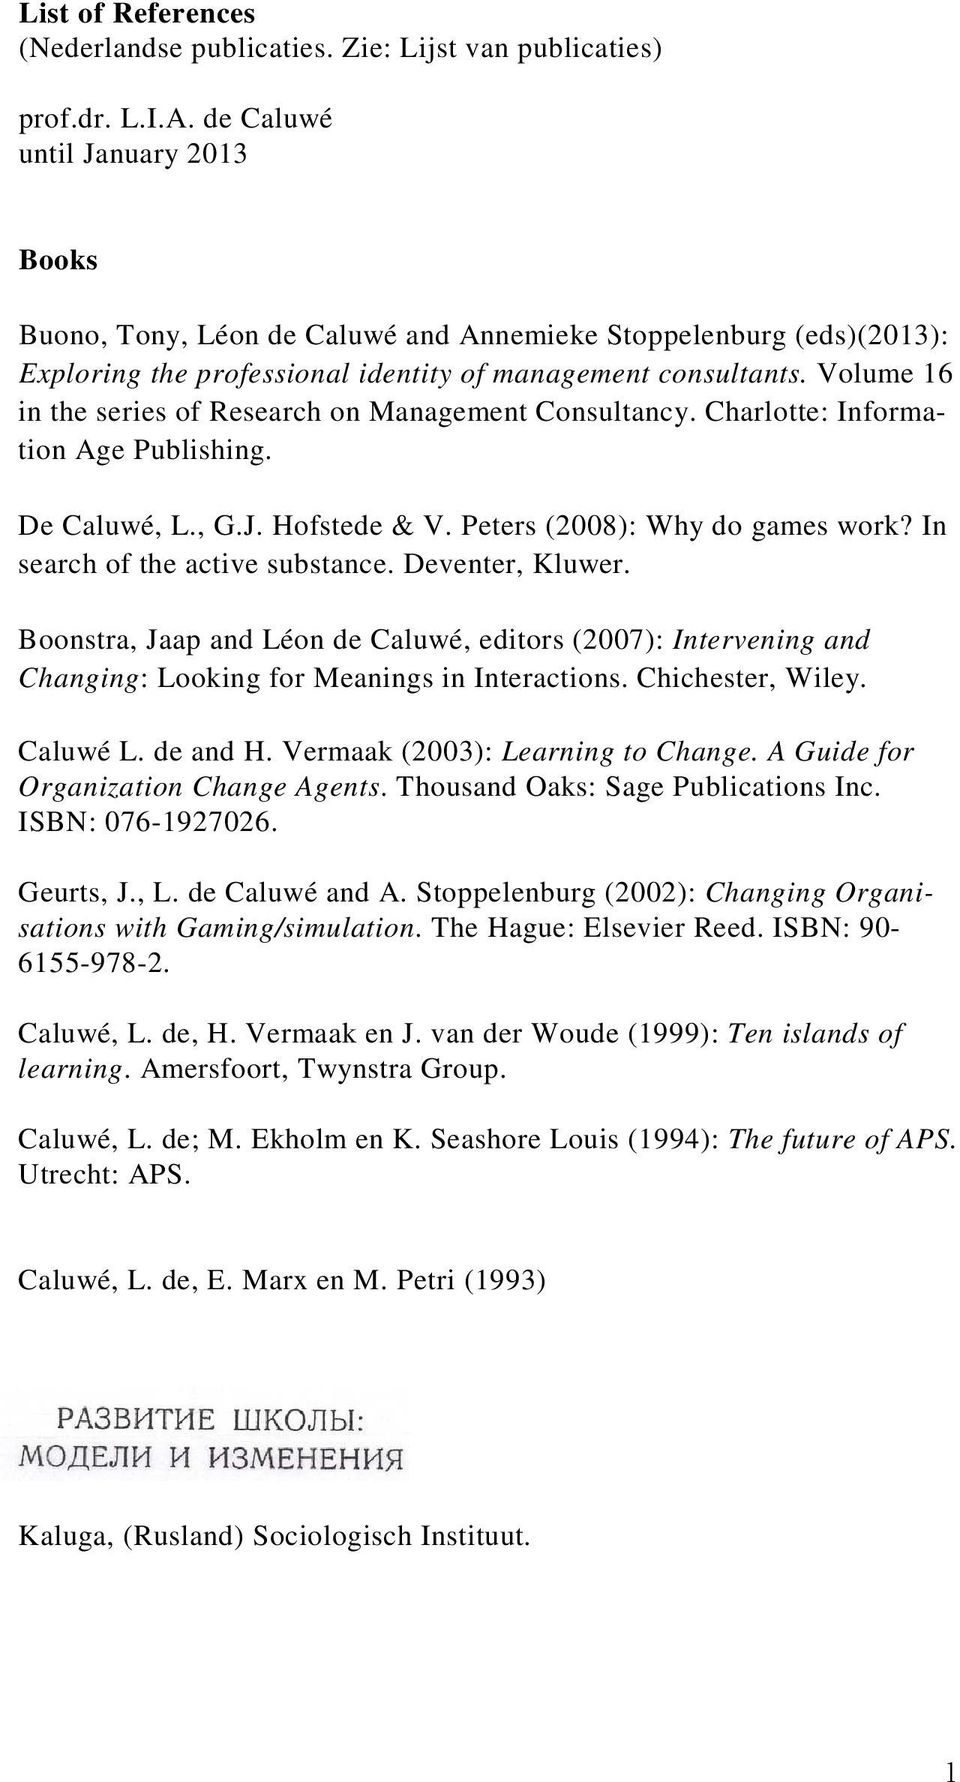 Volume 16 in the series of Research on Management Consultancy. Charlotte: Information Age Publishing. De Caluwé, L., G.J. Hofstede & V. Peters (2008): Why do games work?